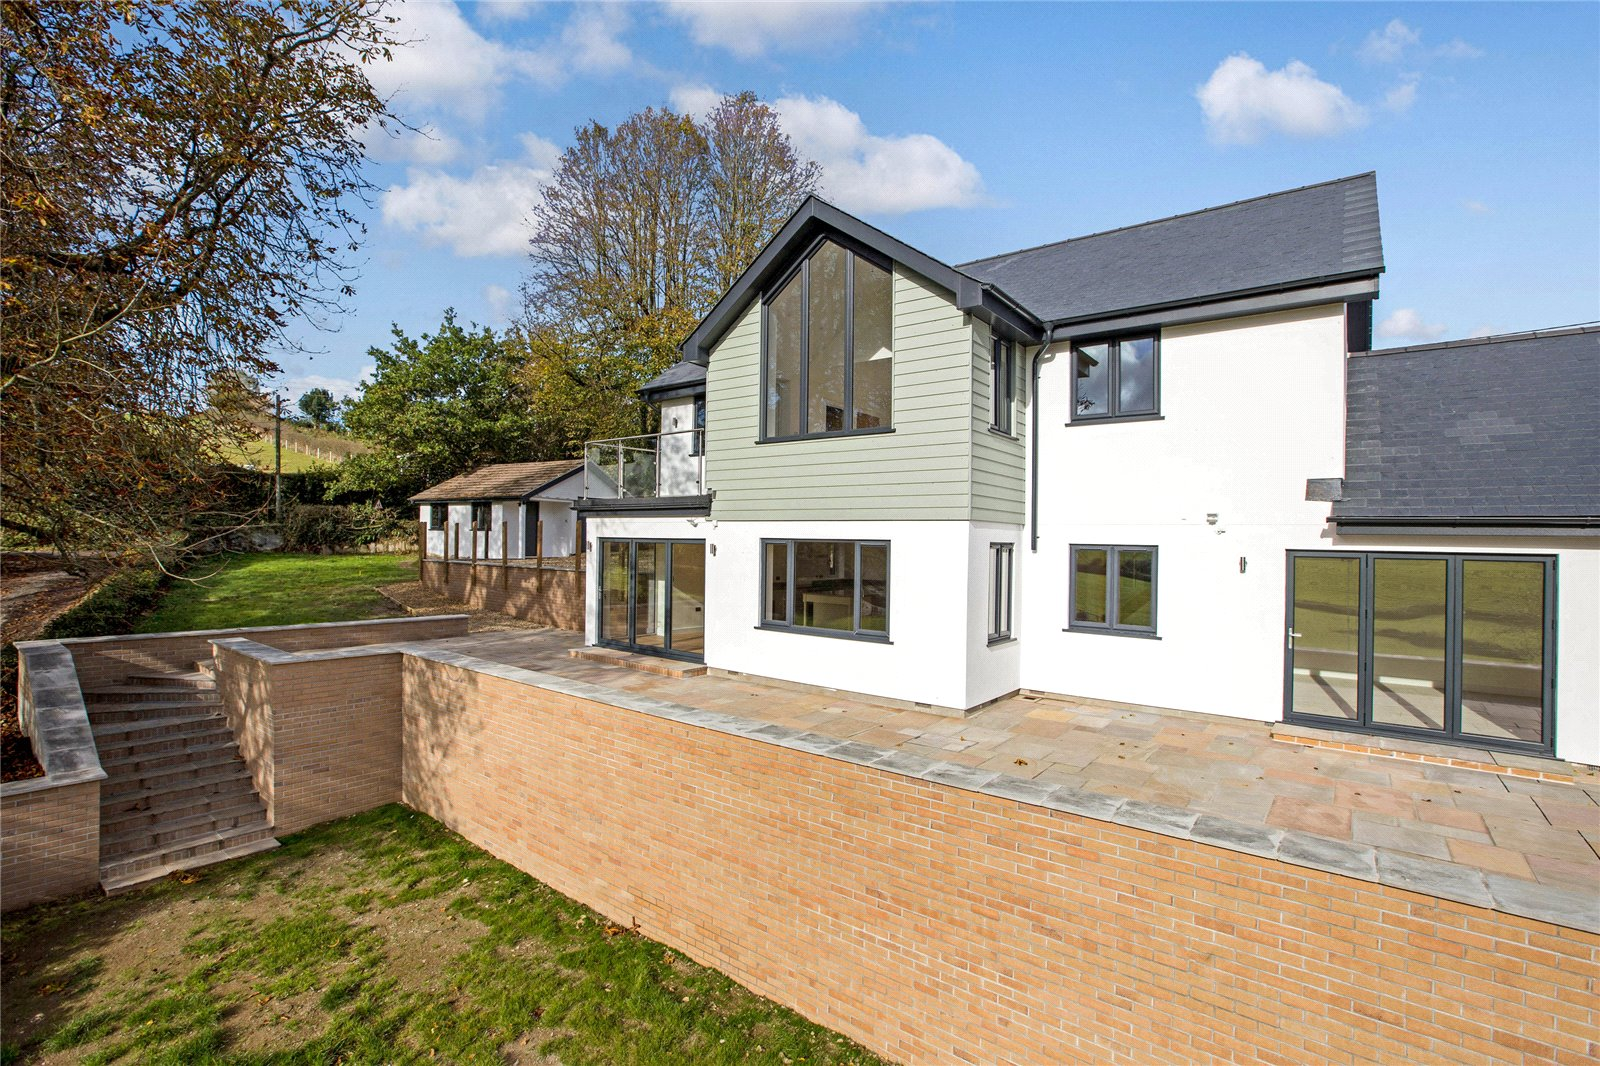 Houses for sale in south brent devon uk